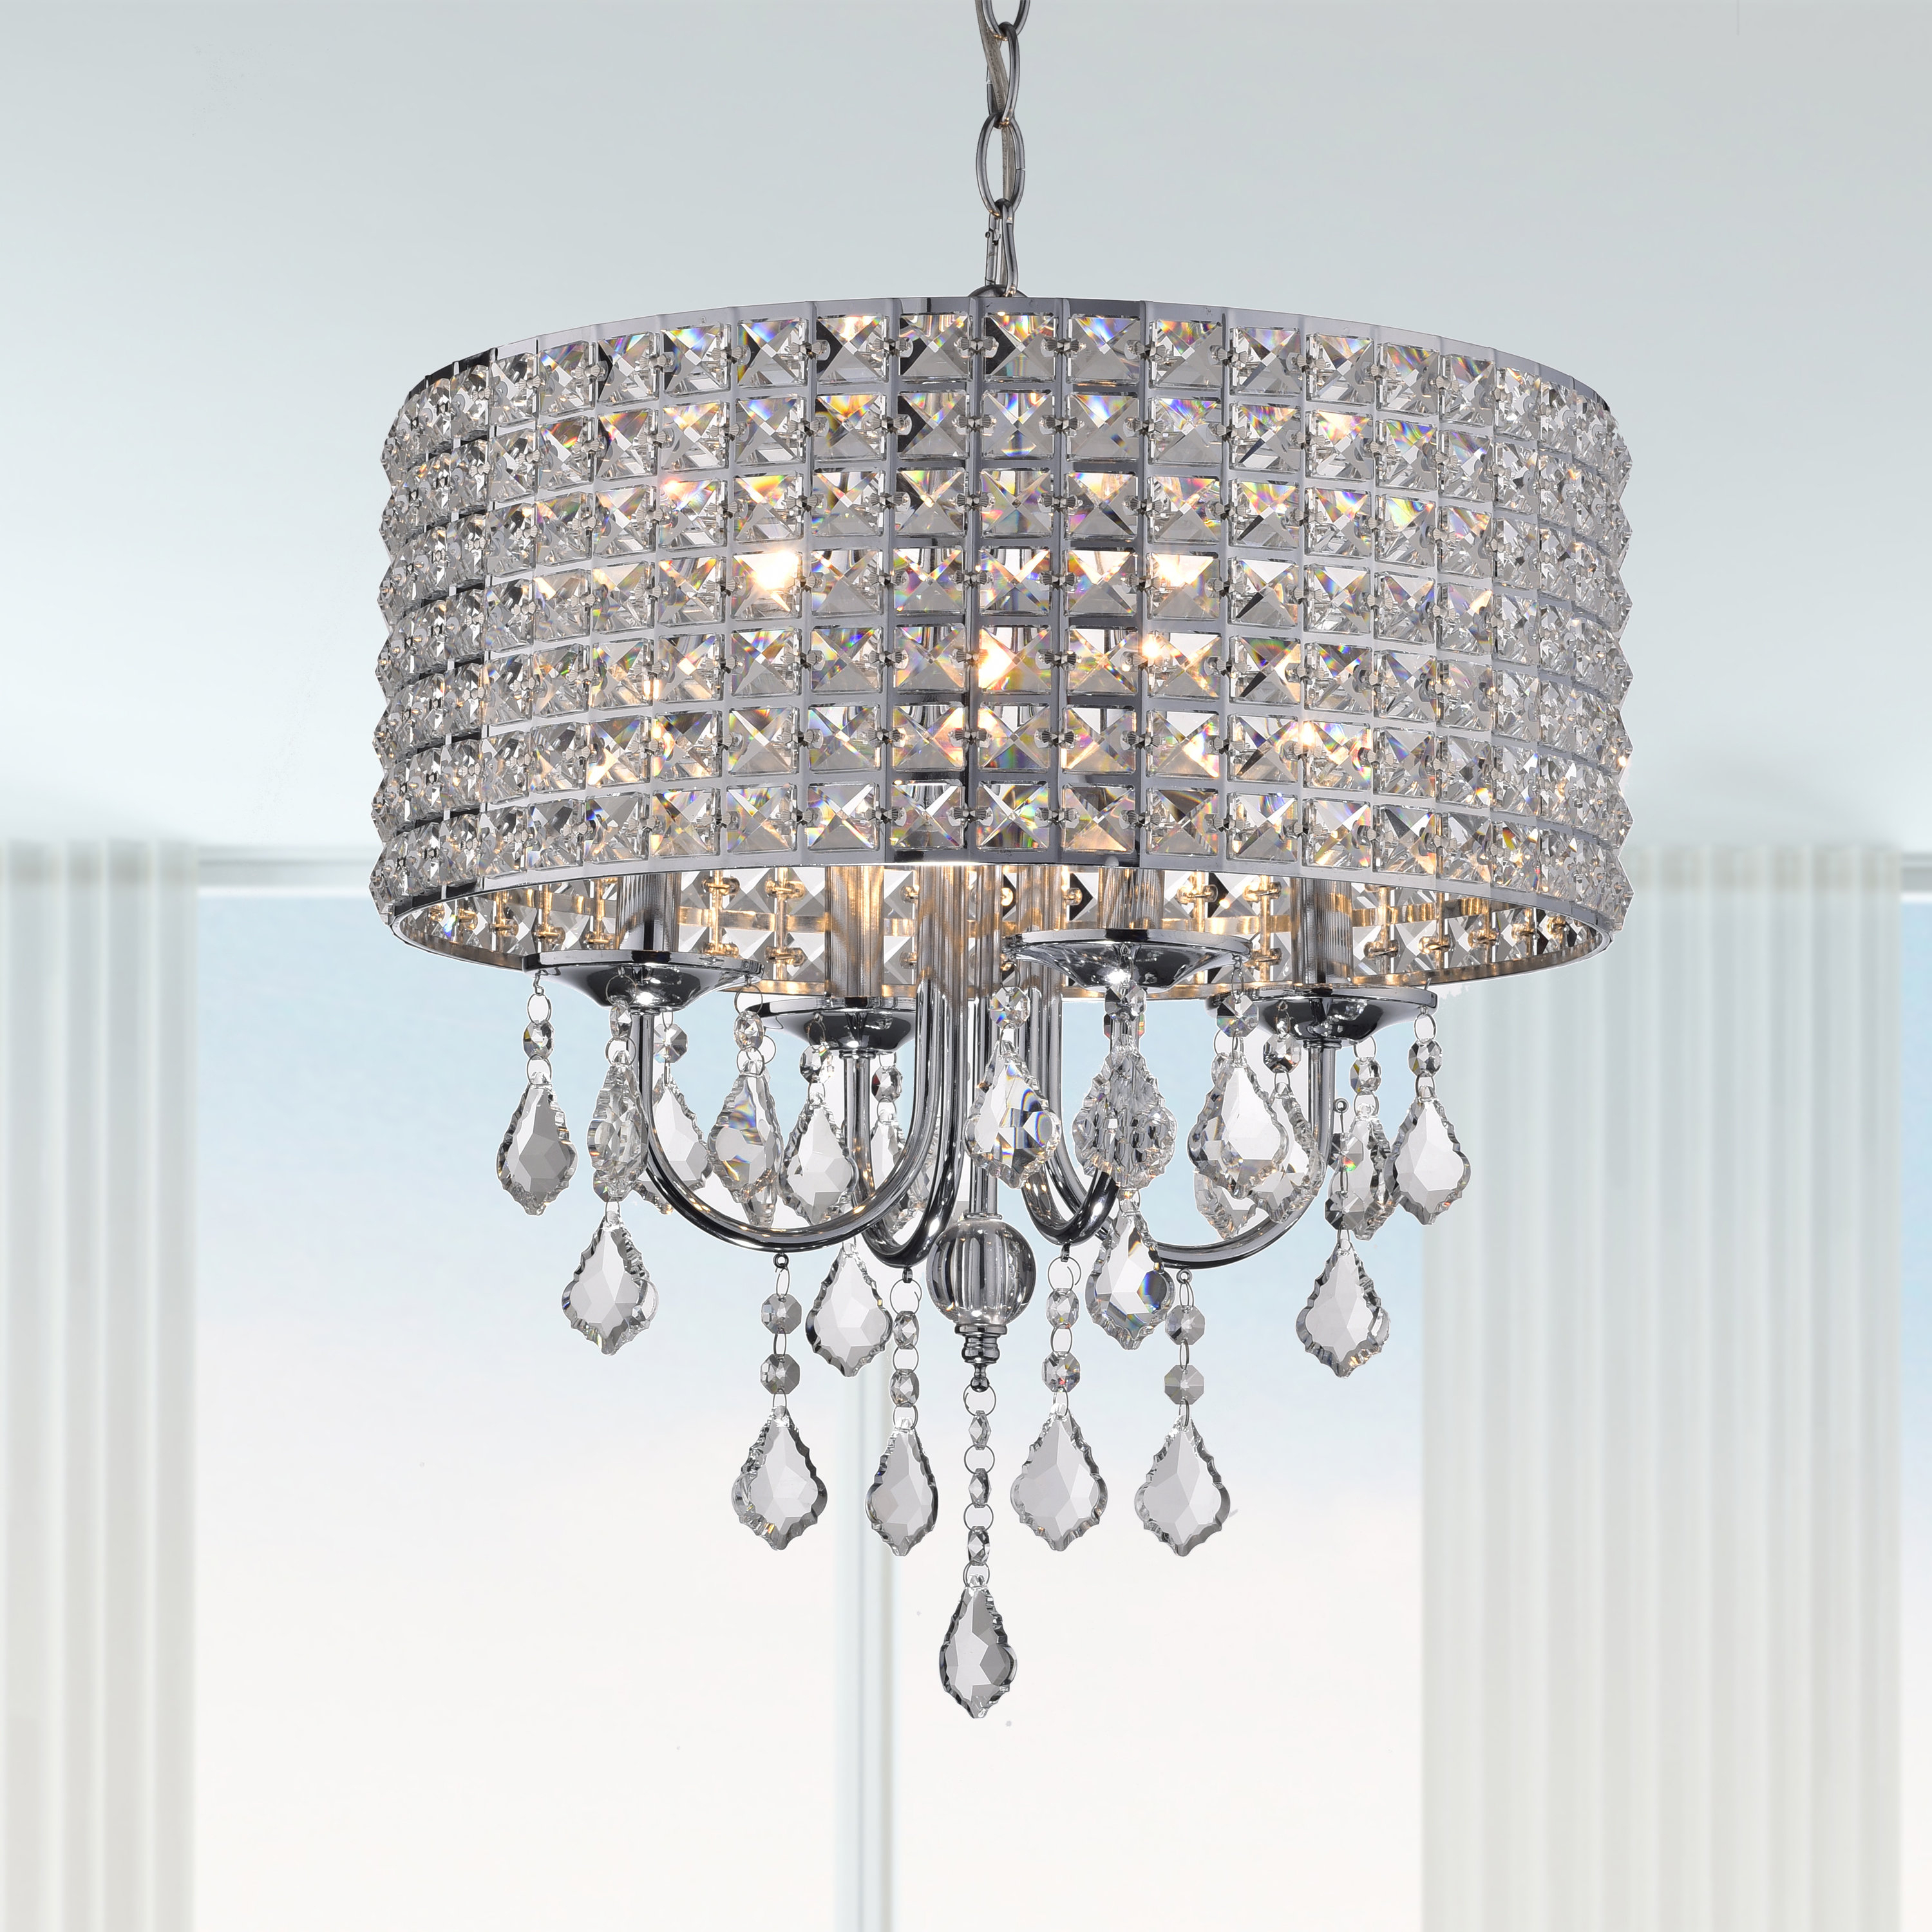 Albano 4 Light Crystal Chandelier Pertaining To Jill 4 Light Drum Chandeliers (View 13 of 30)